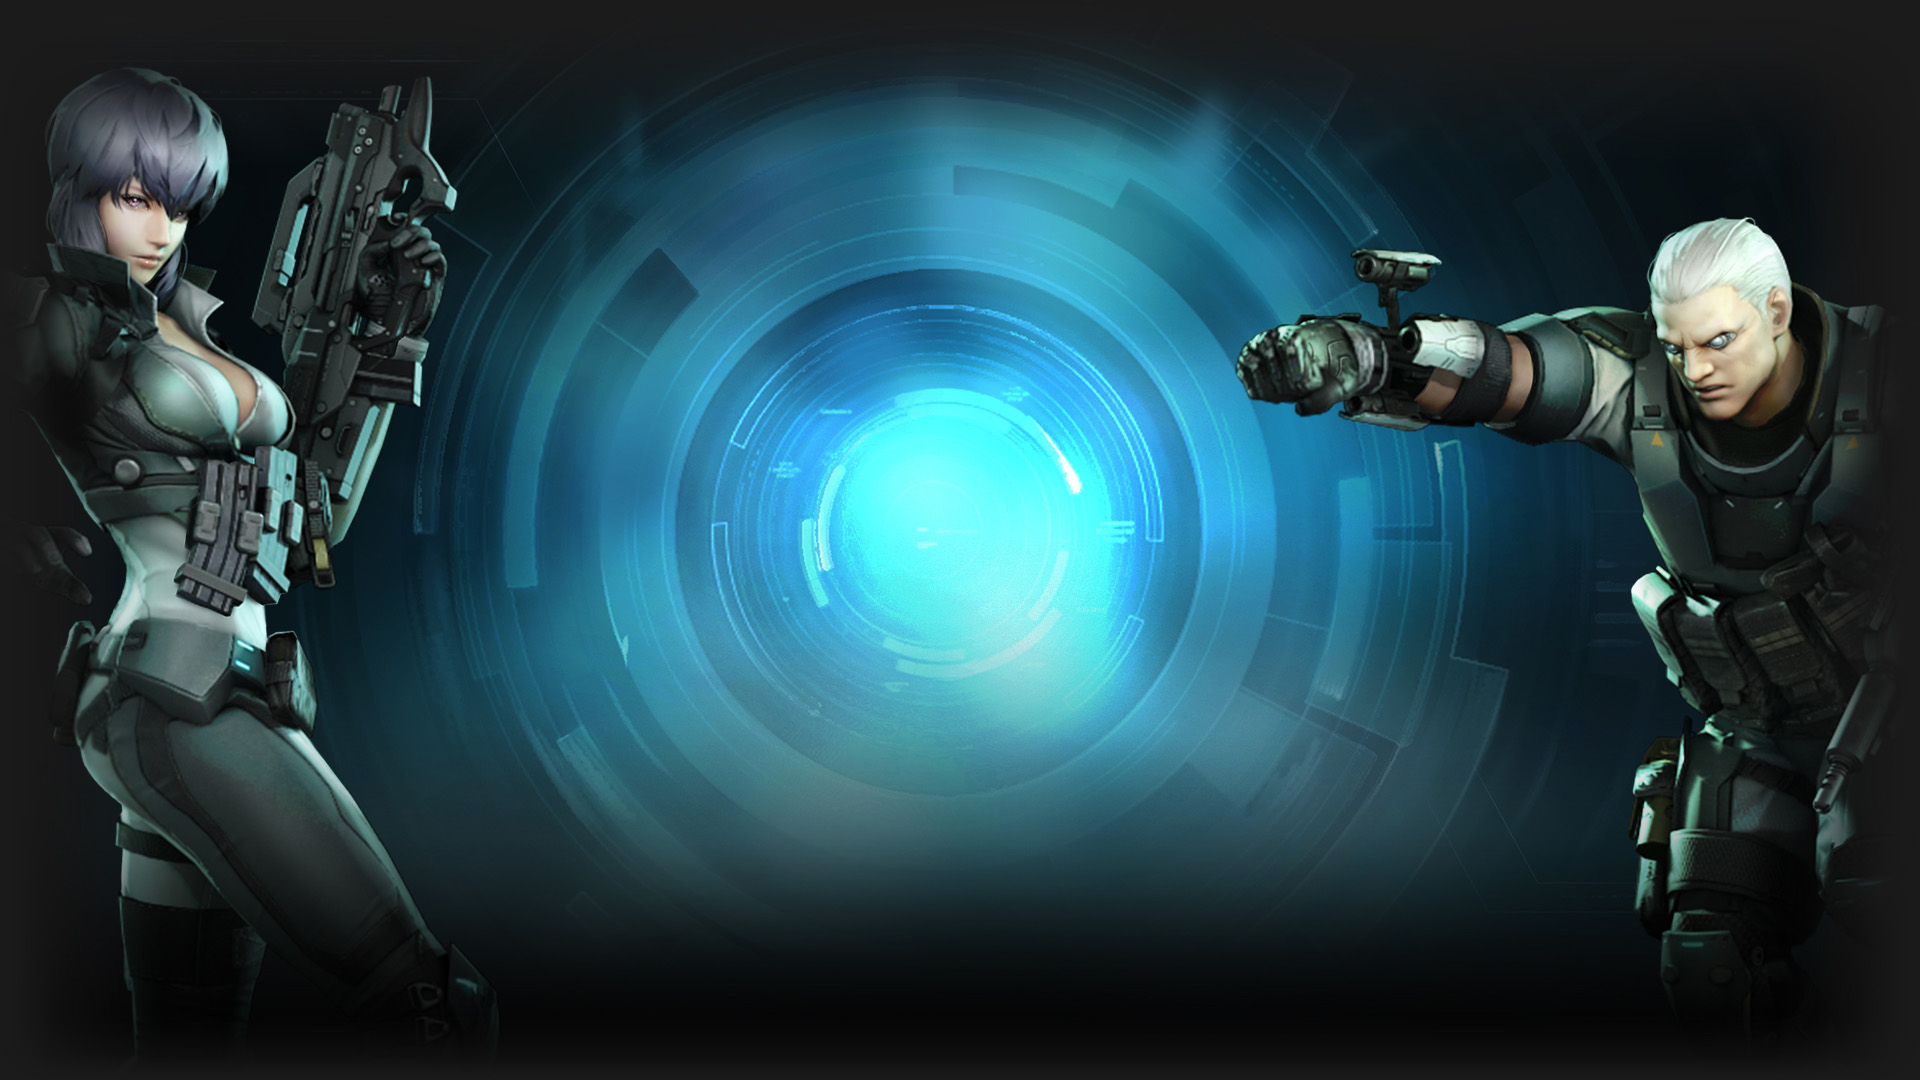 Buy Motoko Profile Background From Steam Payment From Paypal Webmoney Bitcoin Btc